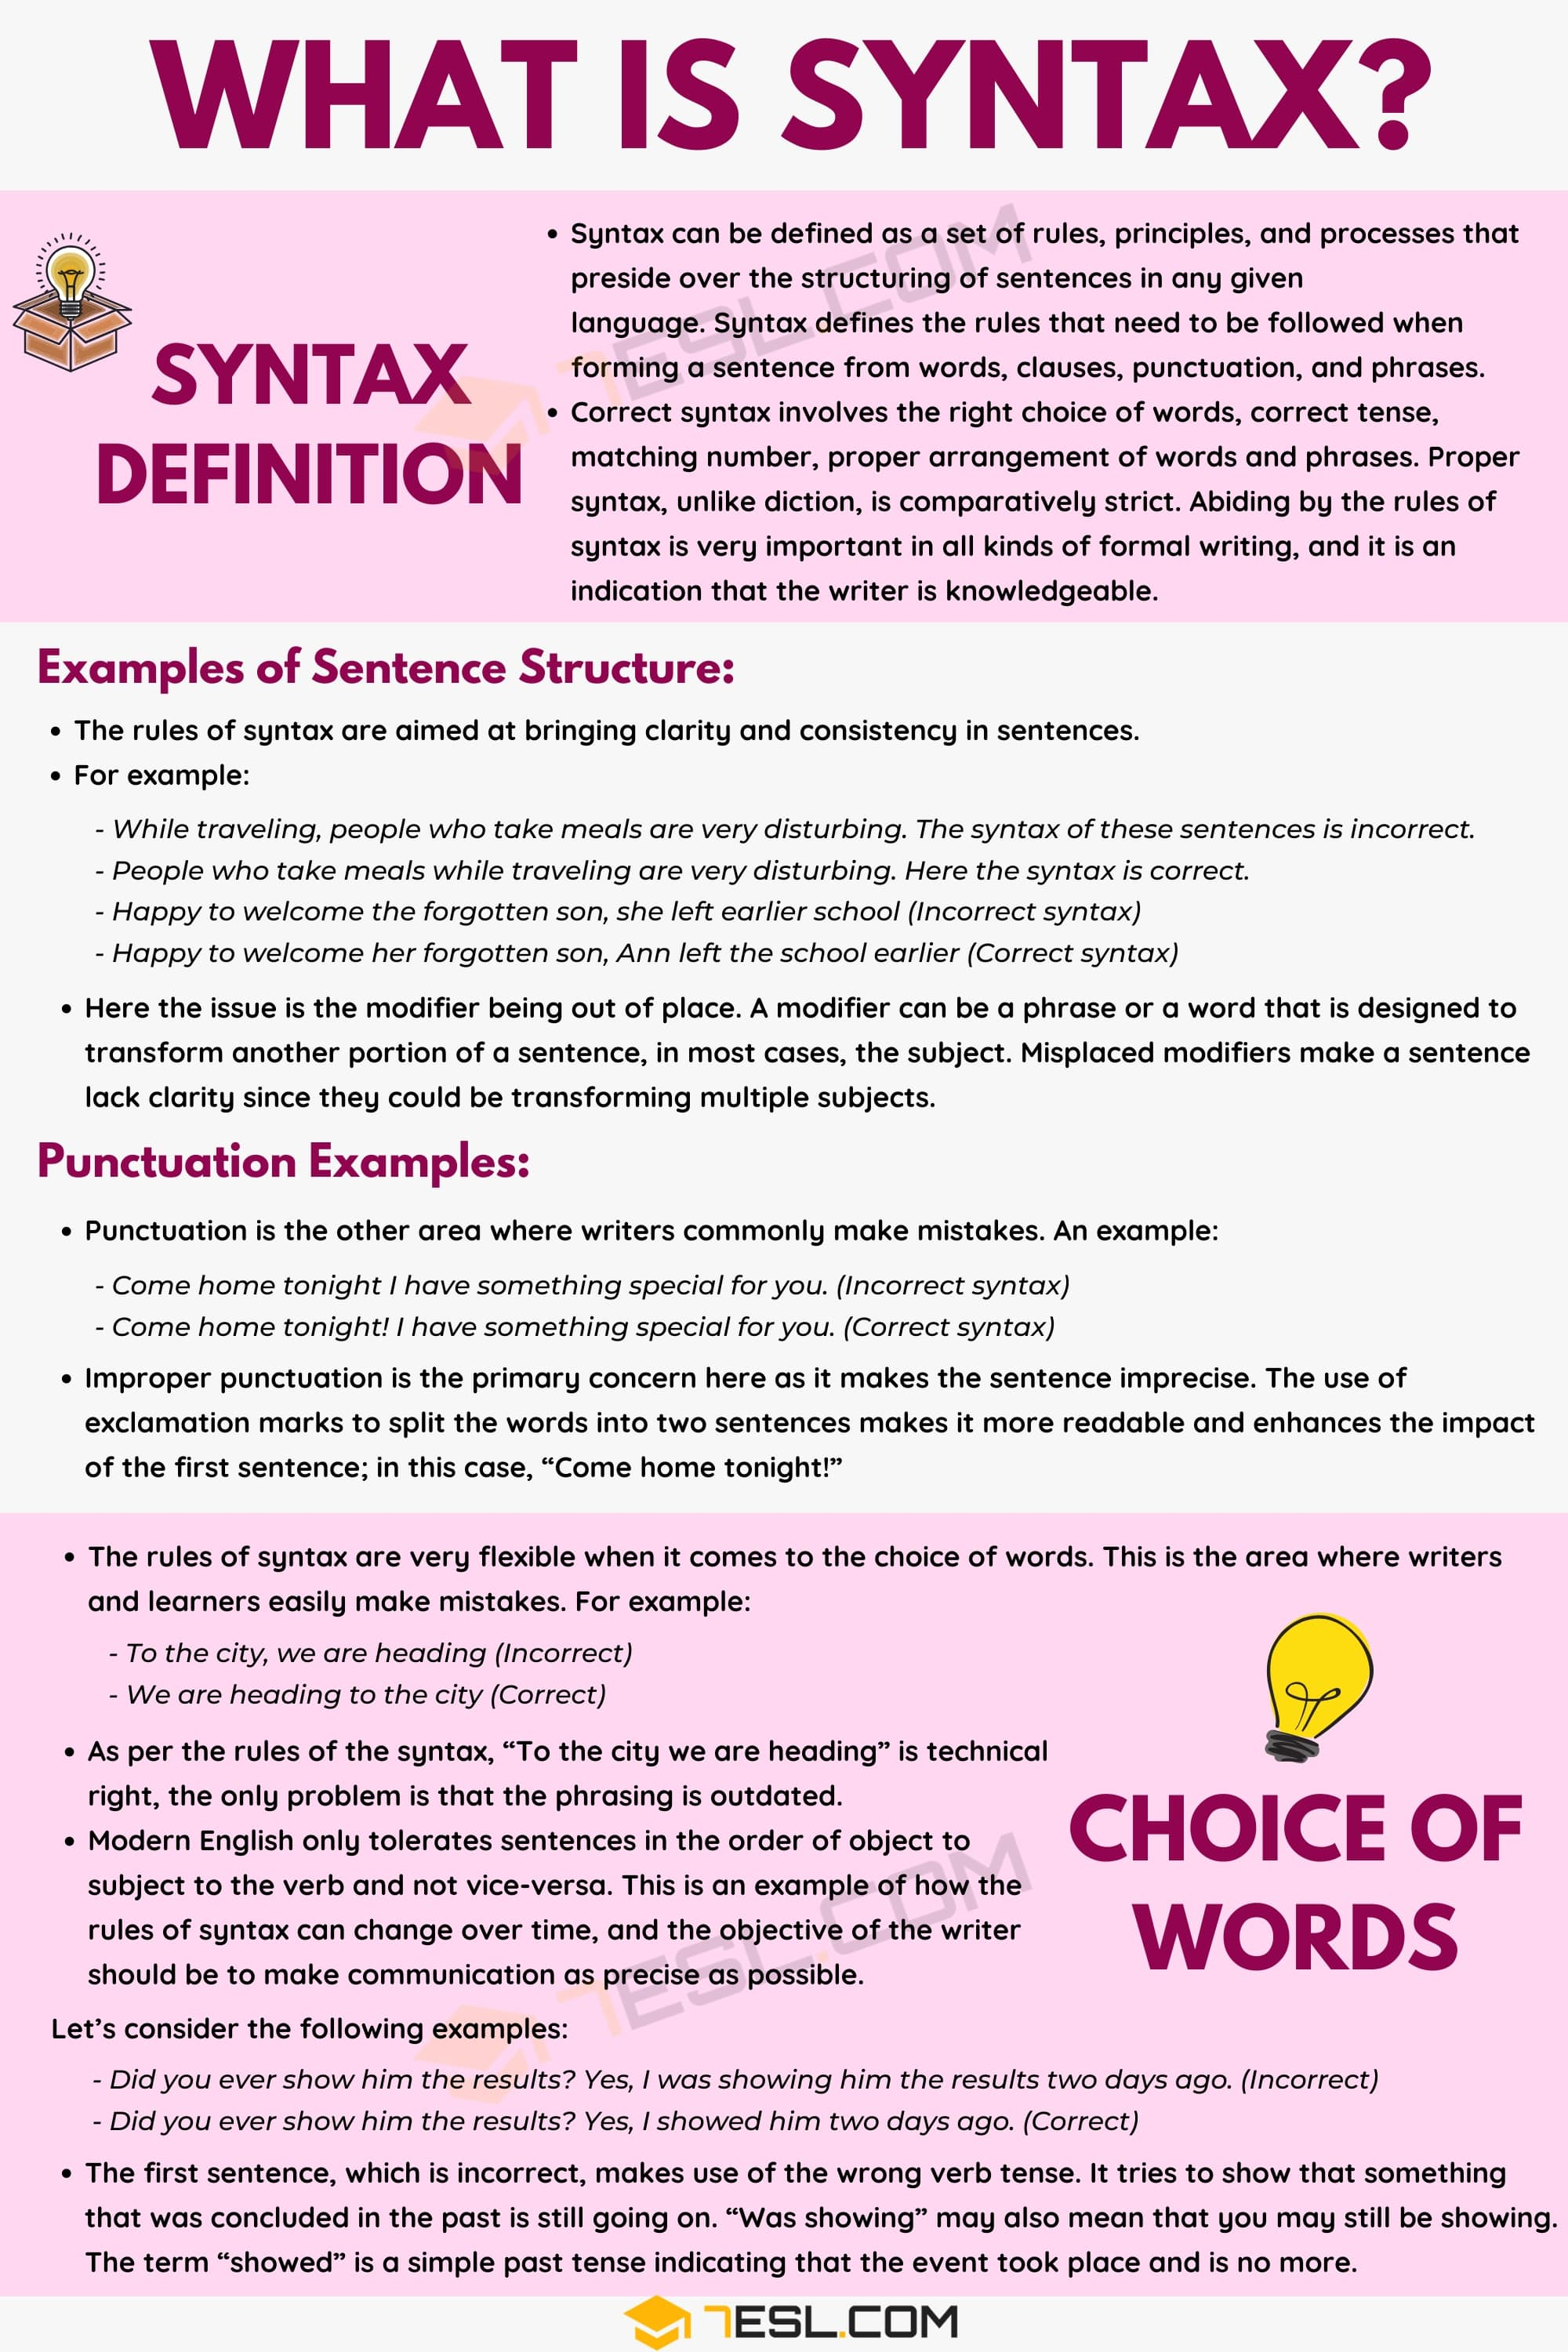 Syntax: Definition and Examples of Syntax in the English Language